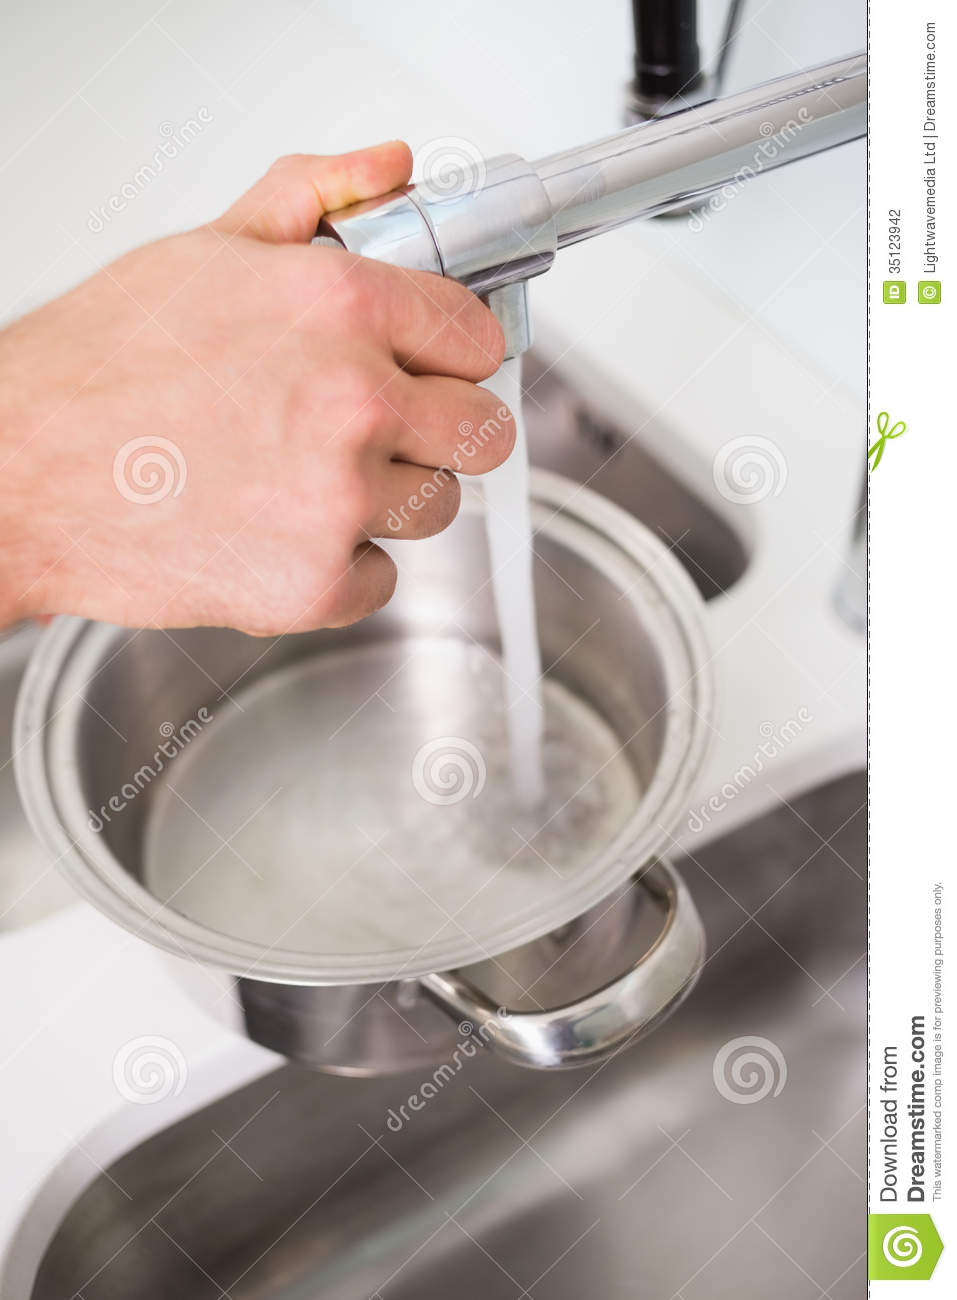 Kitchen Sink Filling Up With Water